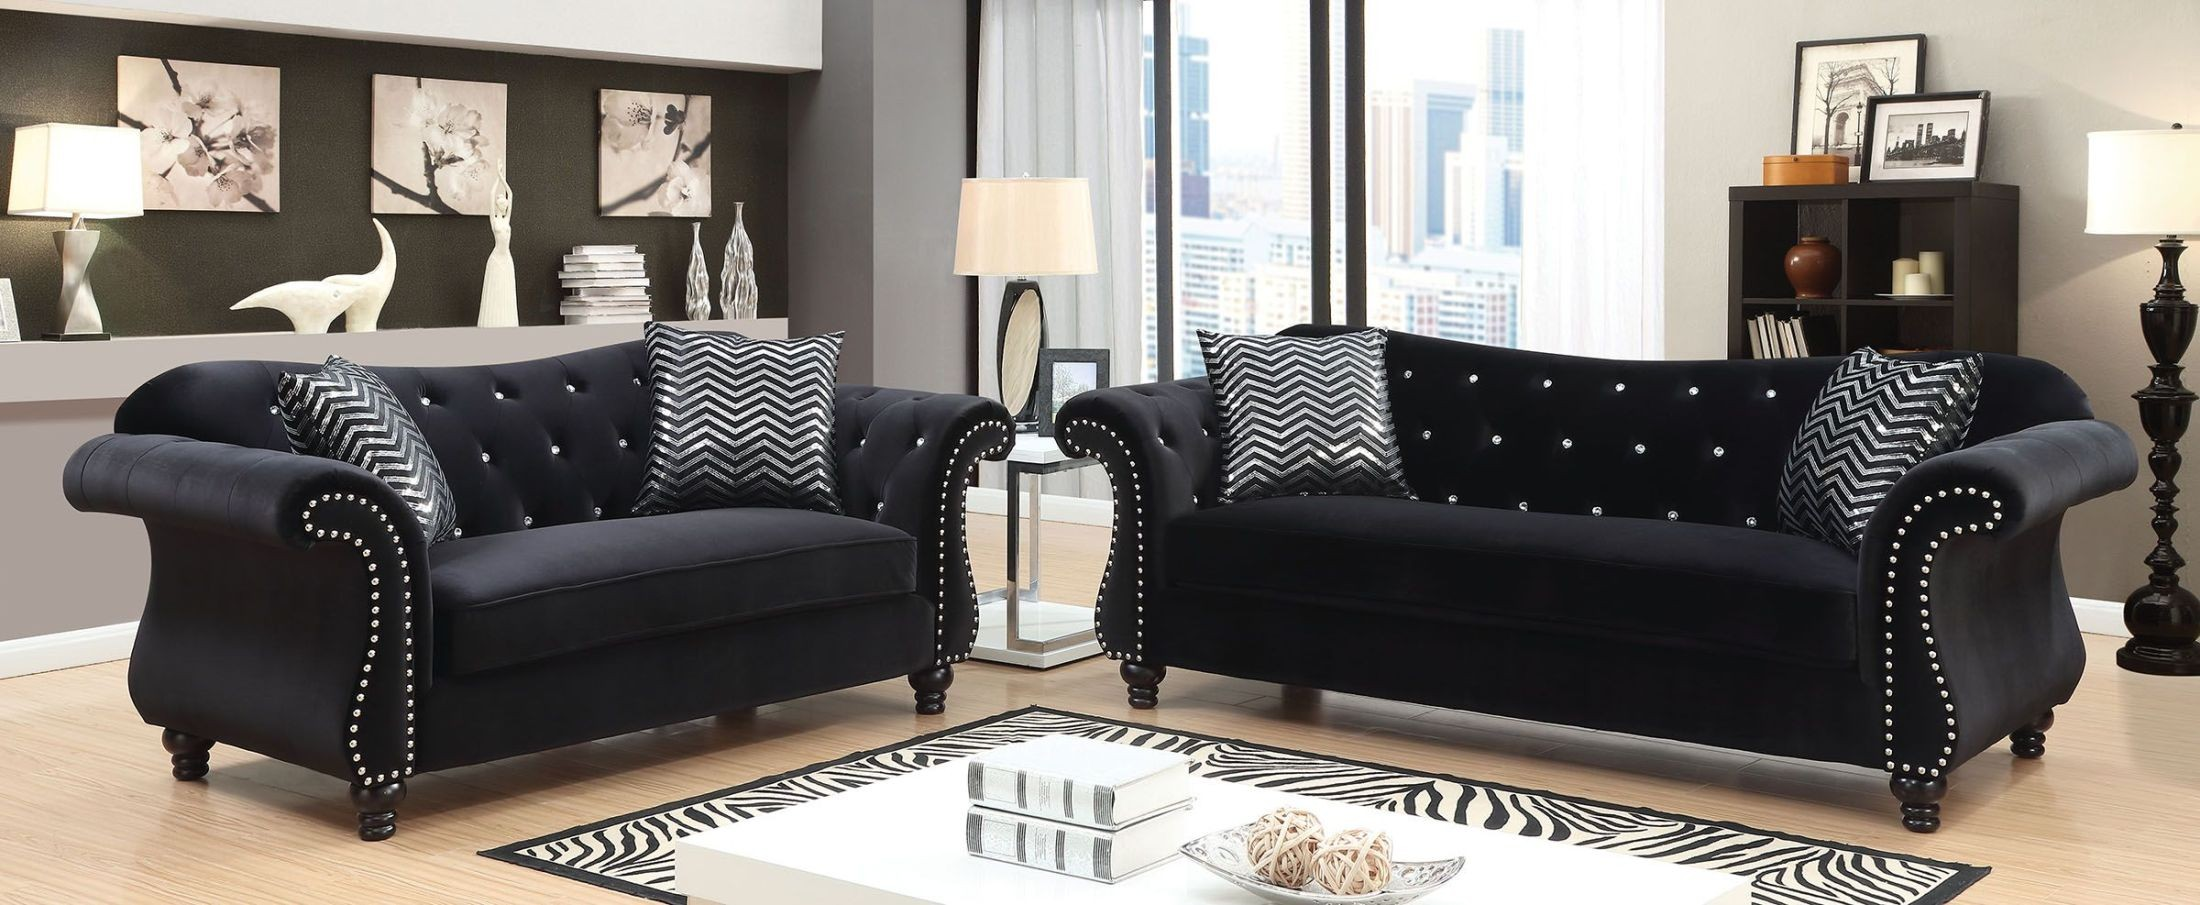 Jolanda I Black Living Room Set From Furniture Of America